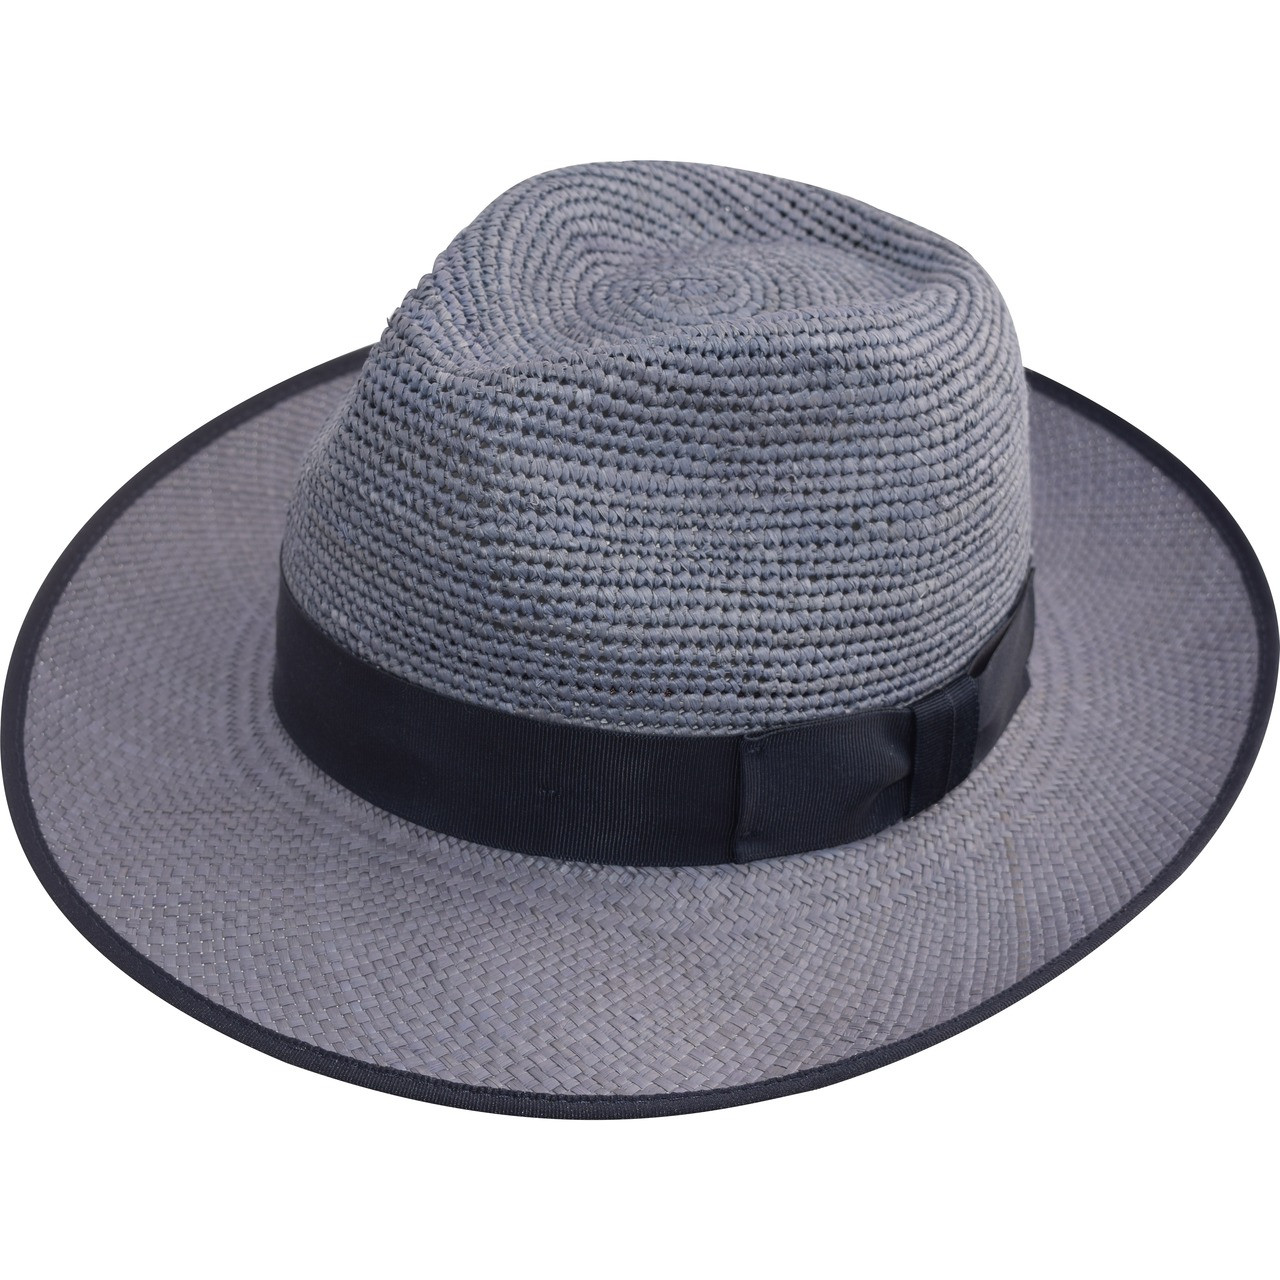 eb3747a5 Trimmed Crochet Crown Snap Trilby panama Hat - Blue - The Panama Hat ...